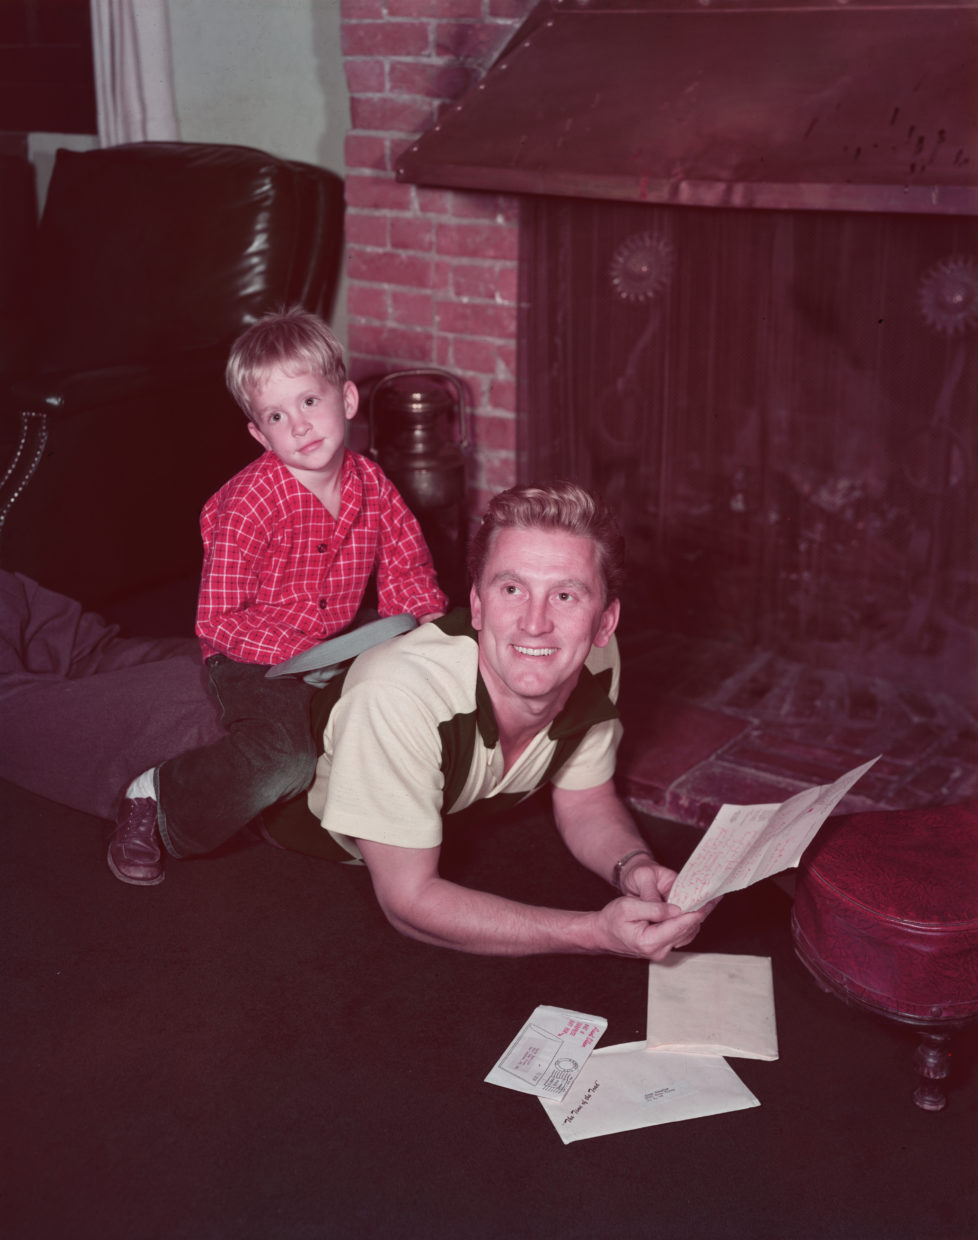 circa 1955: American actor Michael Douglas as a young boy, lounging with his father, the American actor Kirk Douglas, in front of a brick fireplace. Kirk is lying on his stomach and reading his mail as Michael sits on his back. (Photo by Hulton Archive/Getty Images)